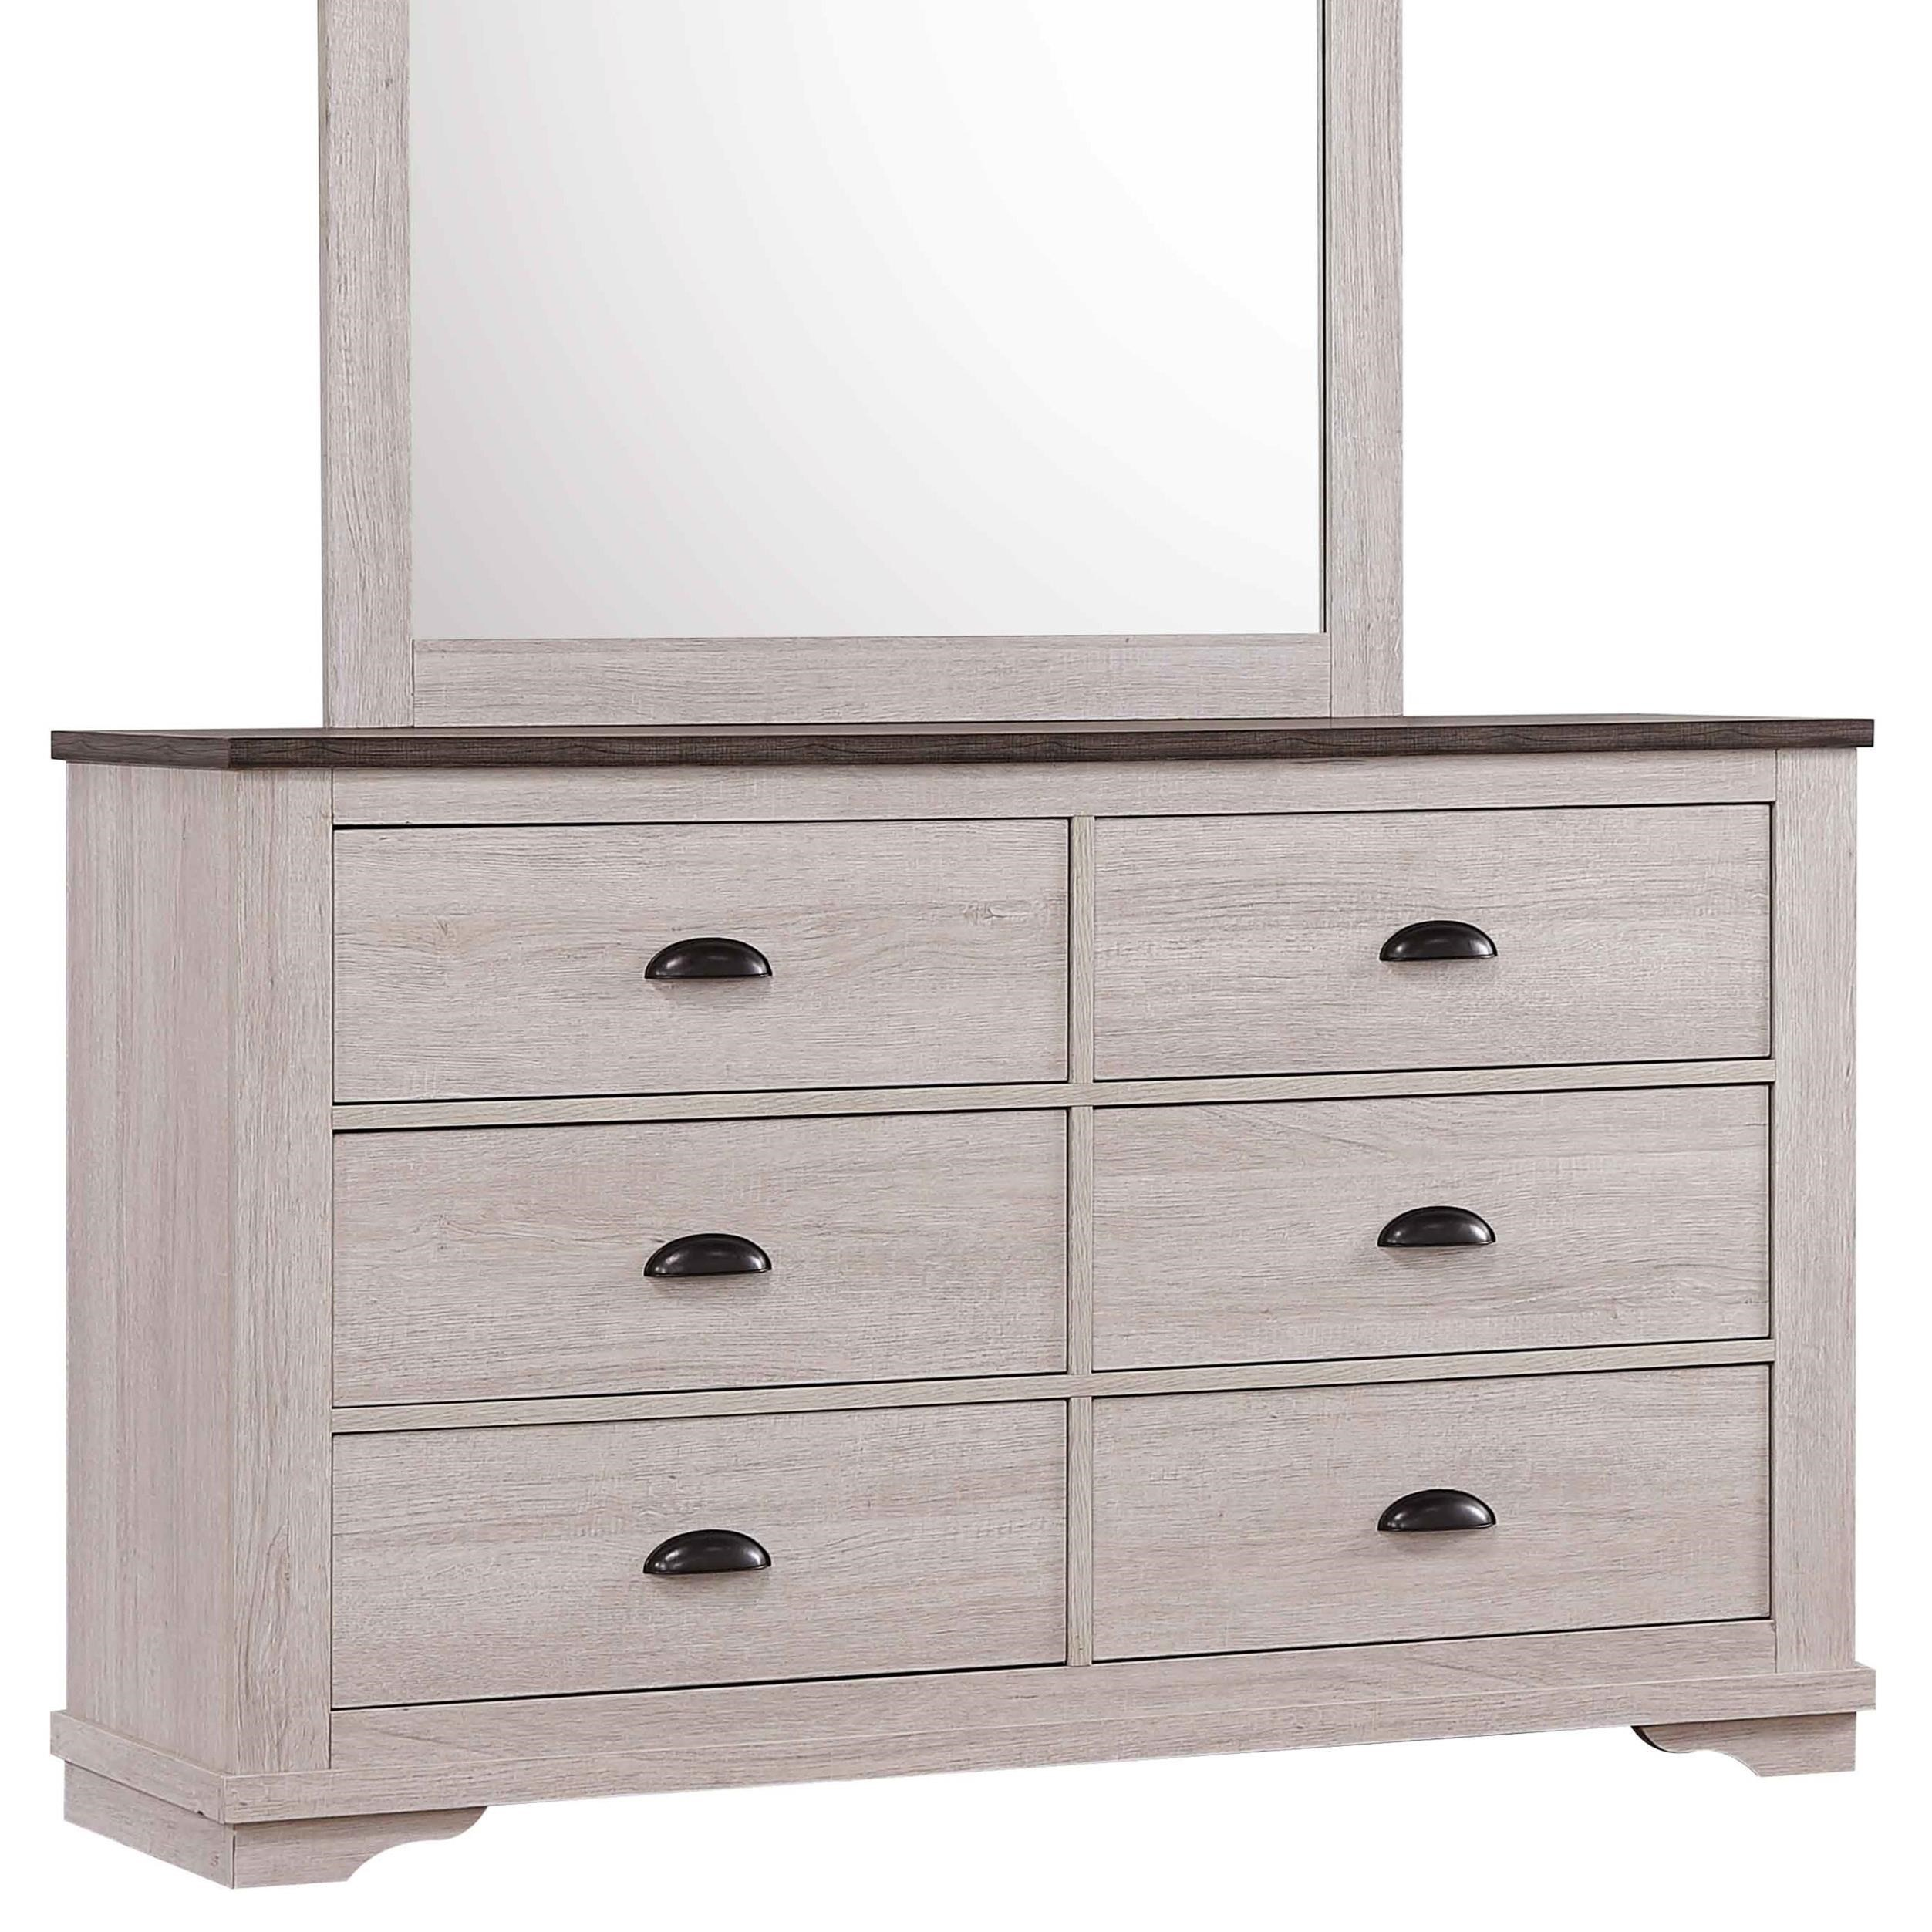 Coralee Dresser by Crown Mark at Northeast Factory Direct